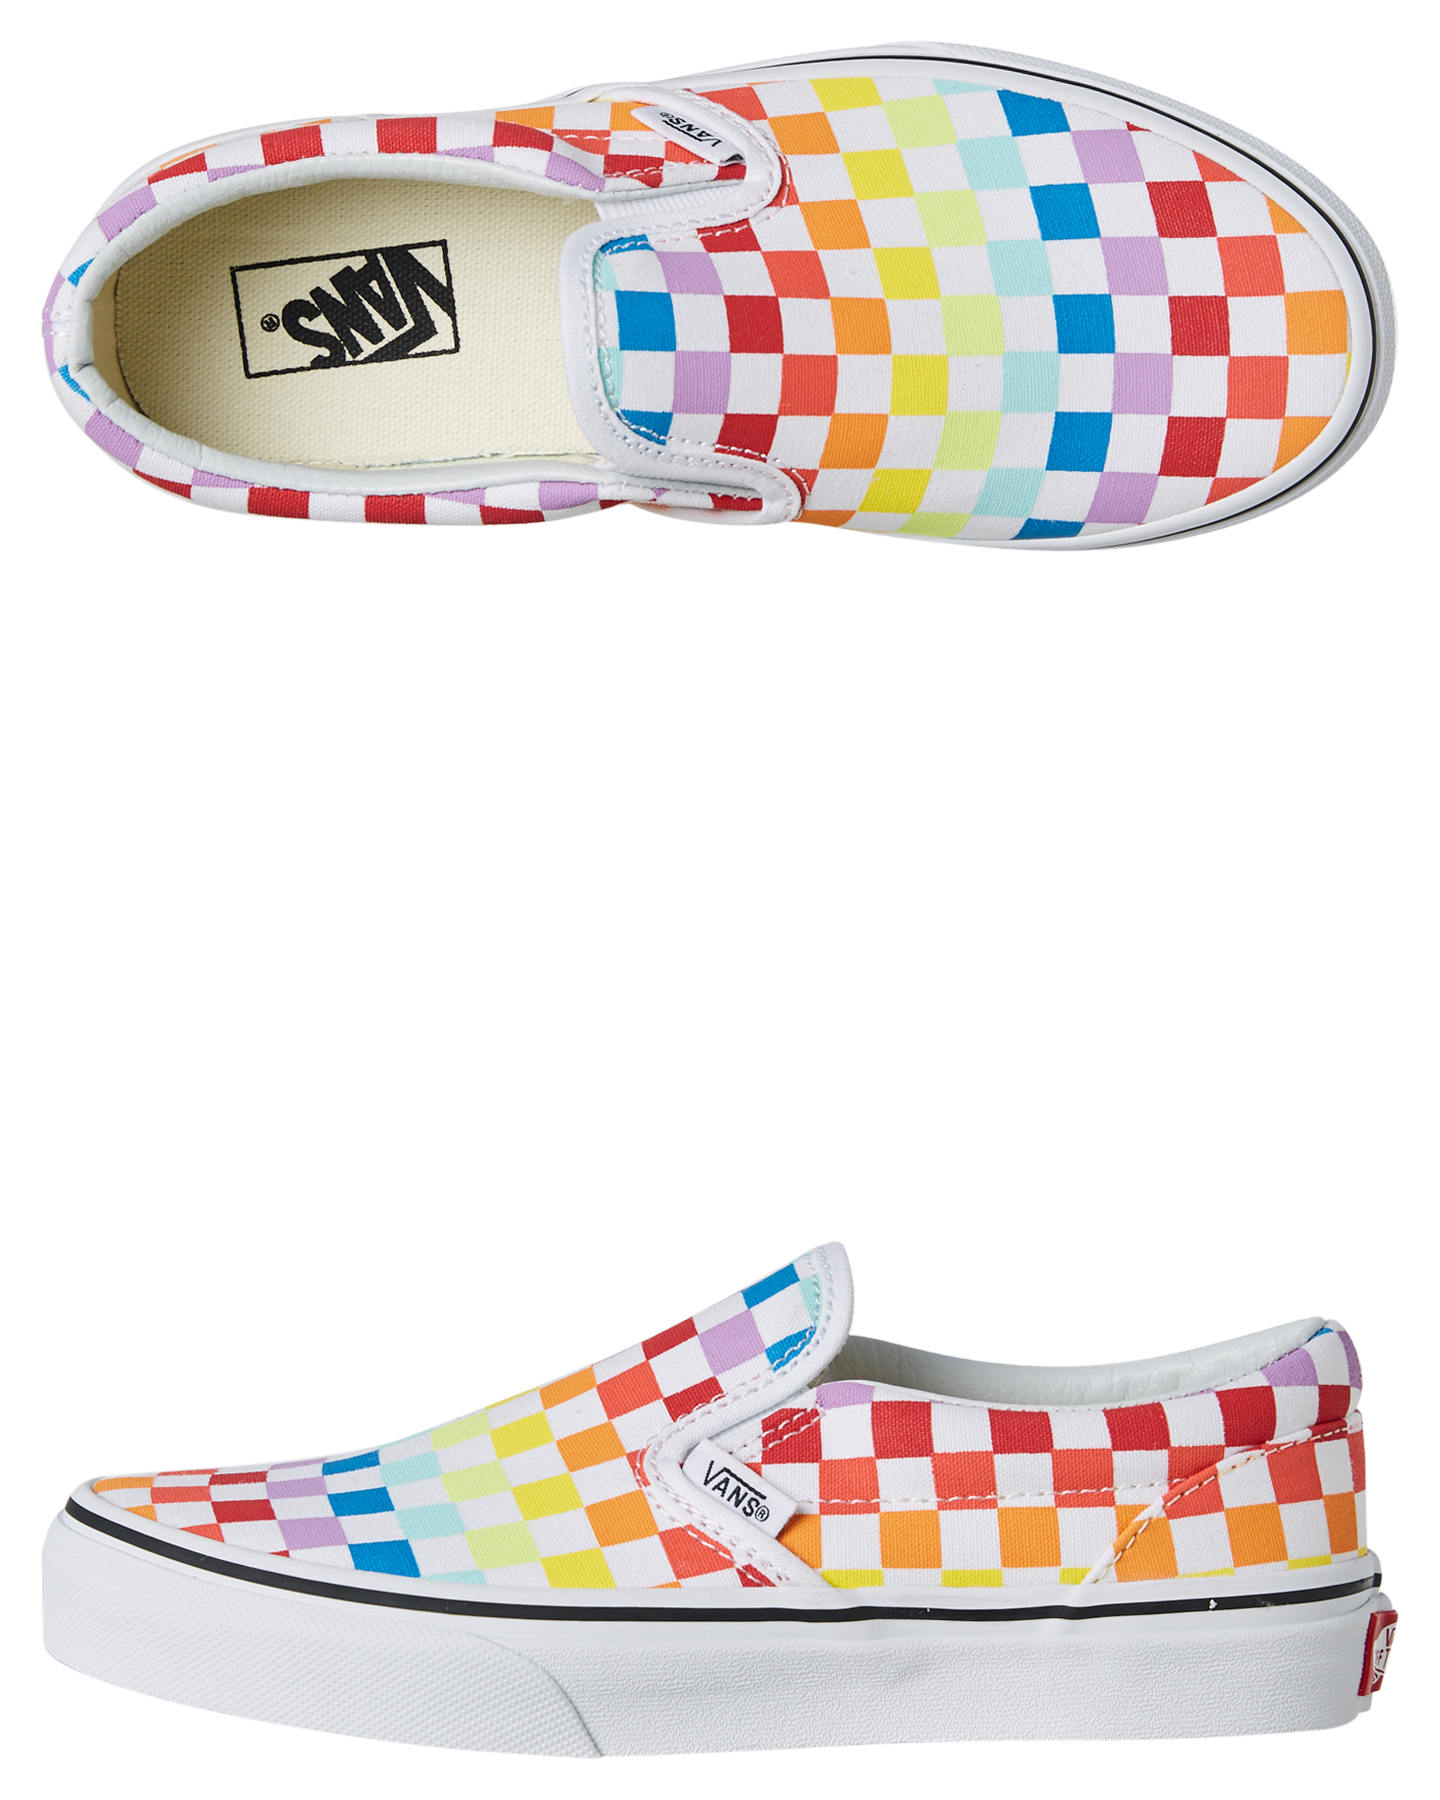 e15c60e3c62 Vans Classic Slip On Girls Shoe - Checkerboard Rainbow